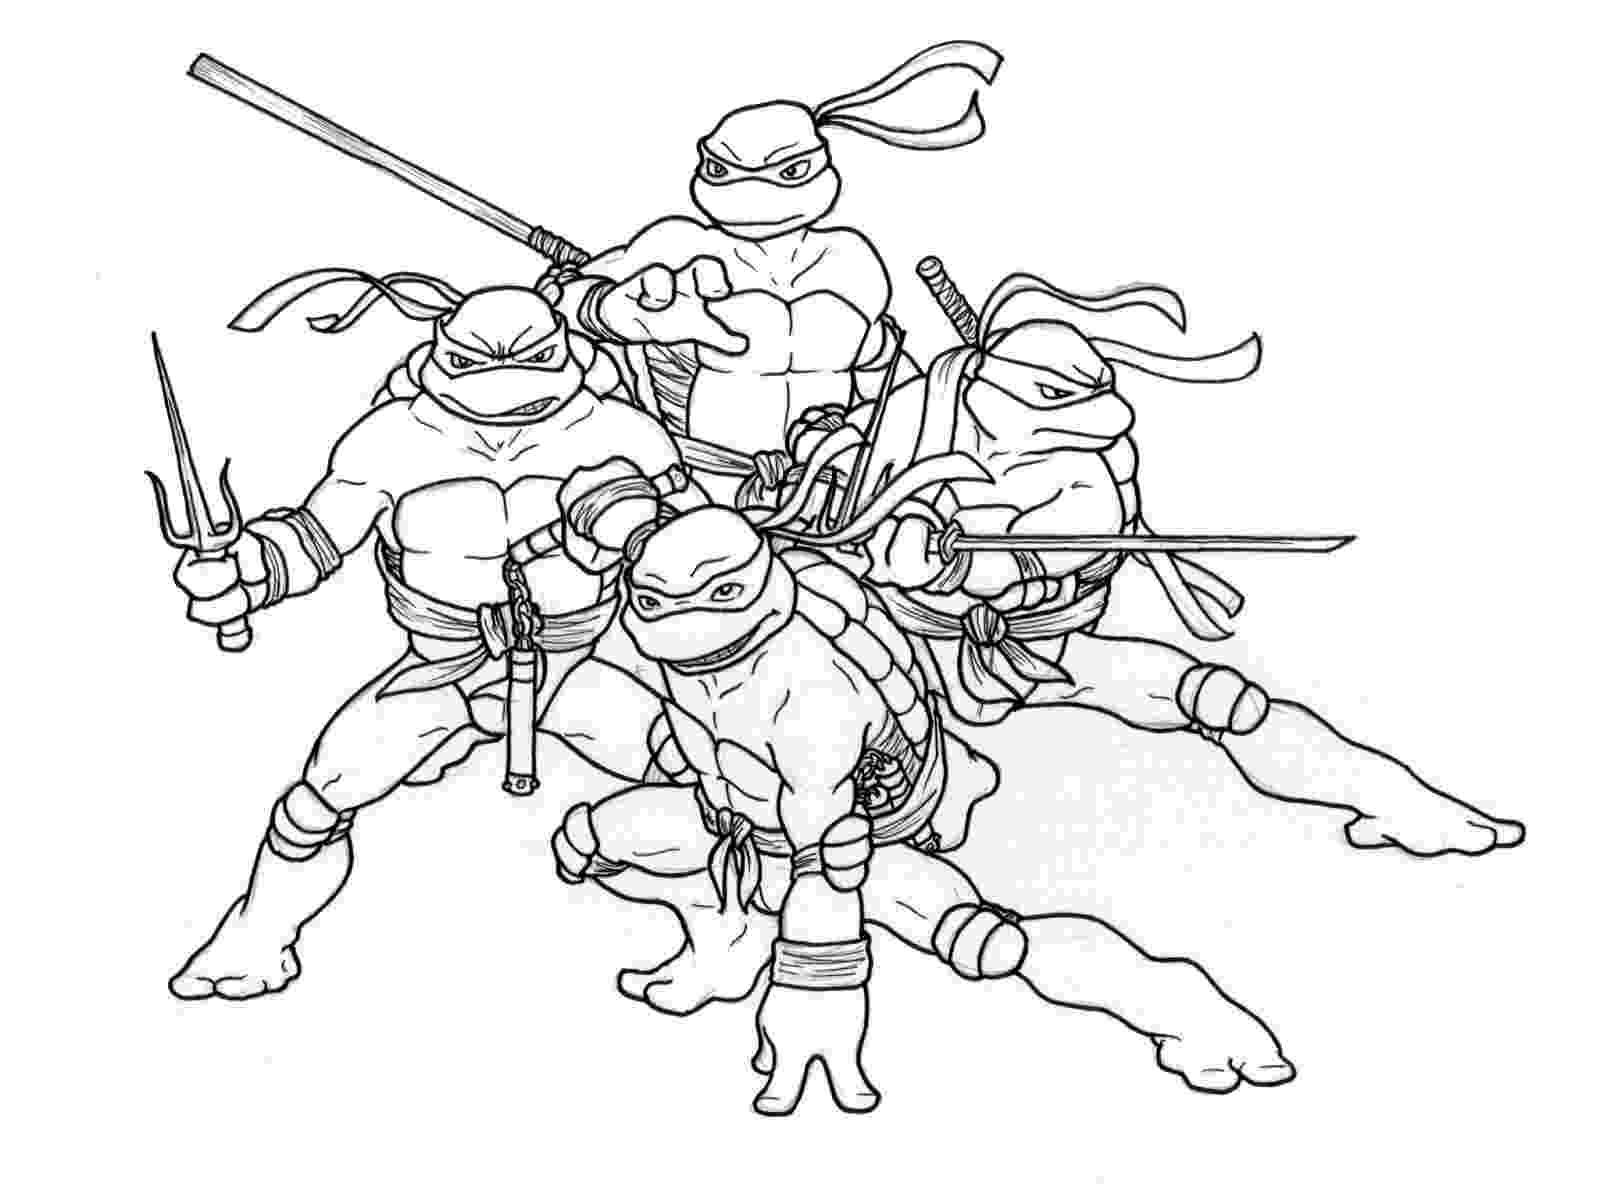 teenage mutant ninja turtles to color print download the attractive ninja coloring pages for ninja to color teenage turtles mutant